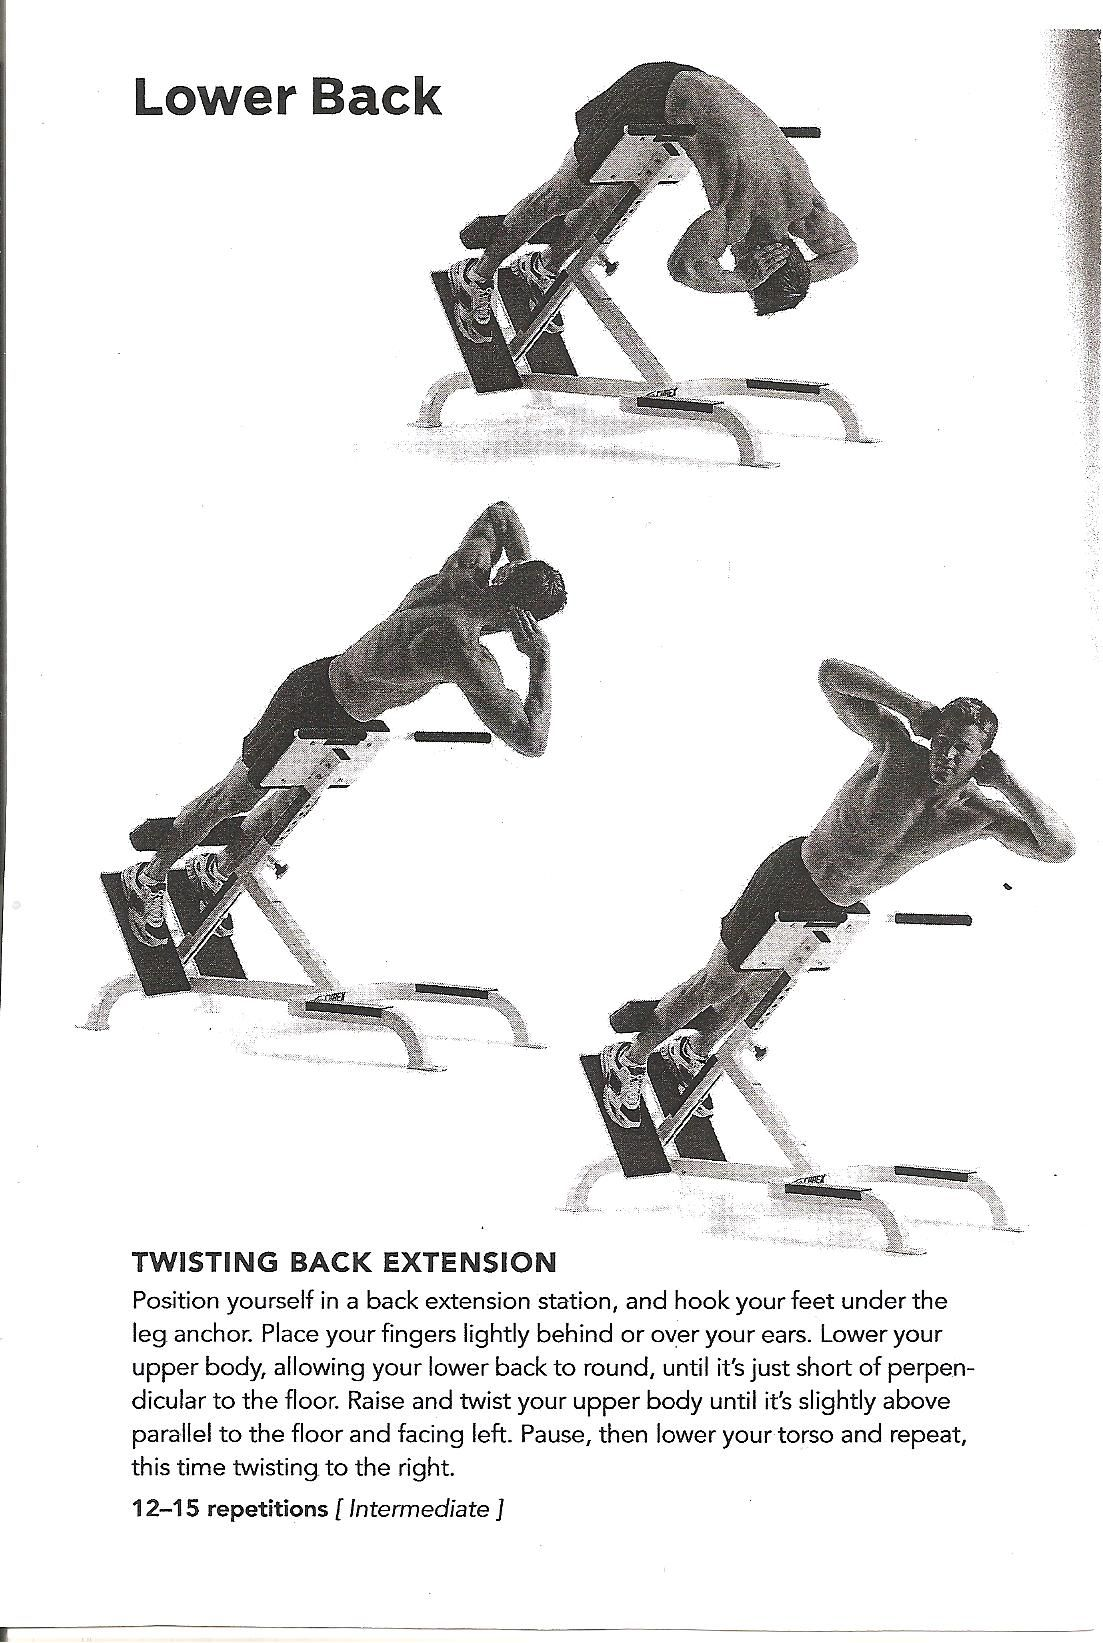 twisting back extension